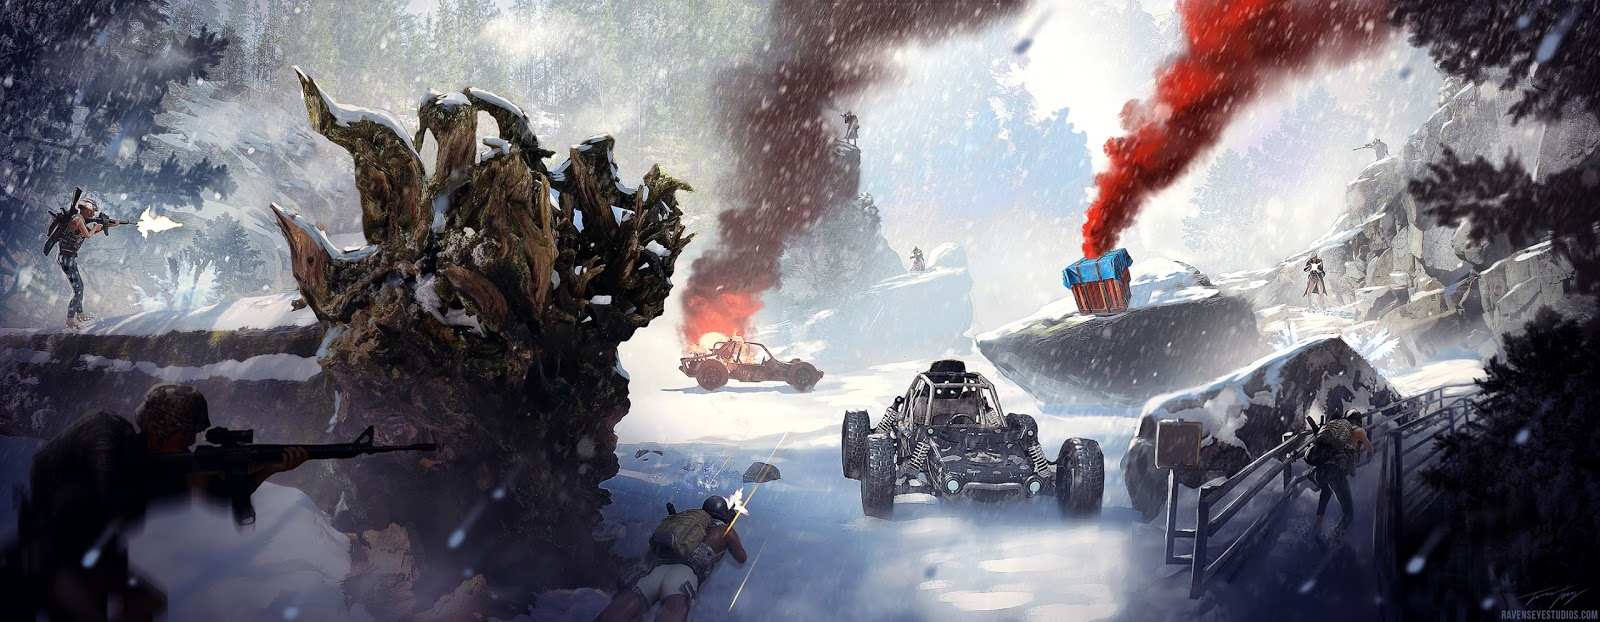 Pubg Christmas Wallpaper: Concept Art And Design Of Travis Lacey